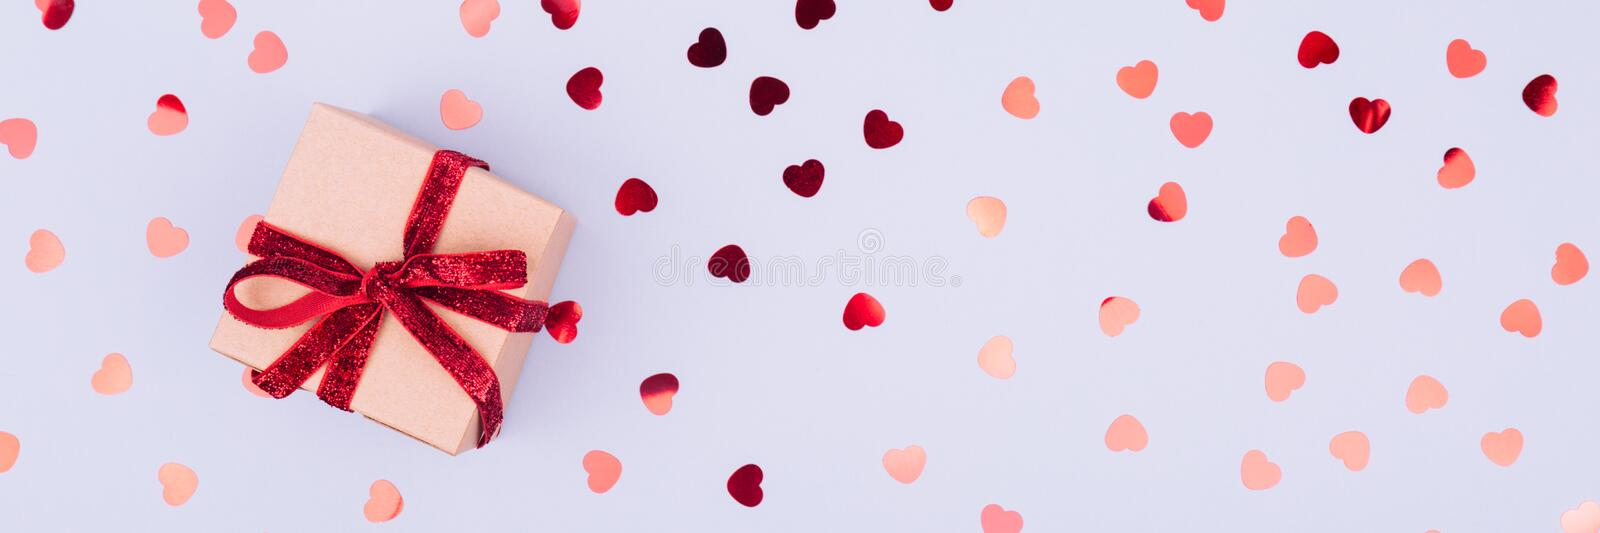 Craft box with red ribbon bow and glitter heart confetti. Valentine day concept. Trendy minimalistic flat lay design background royalty free stock photography